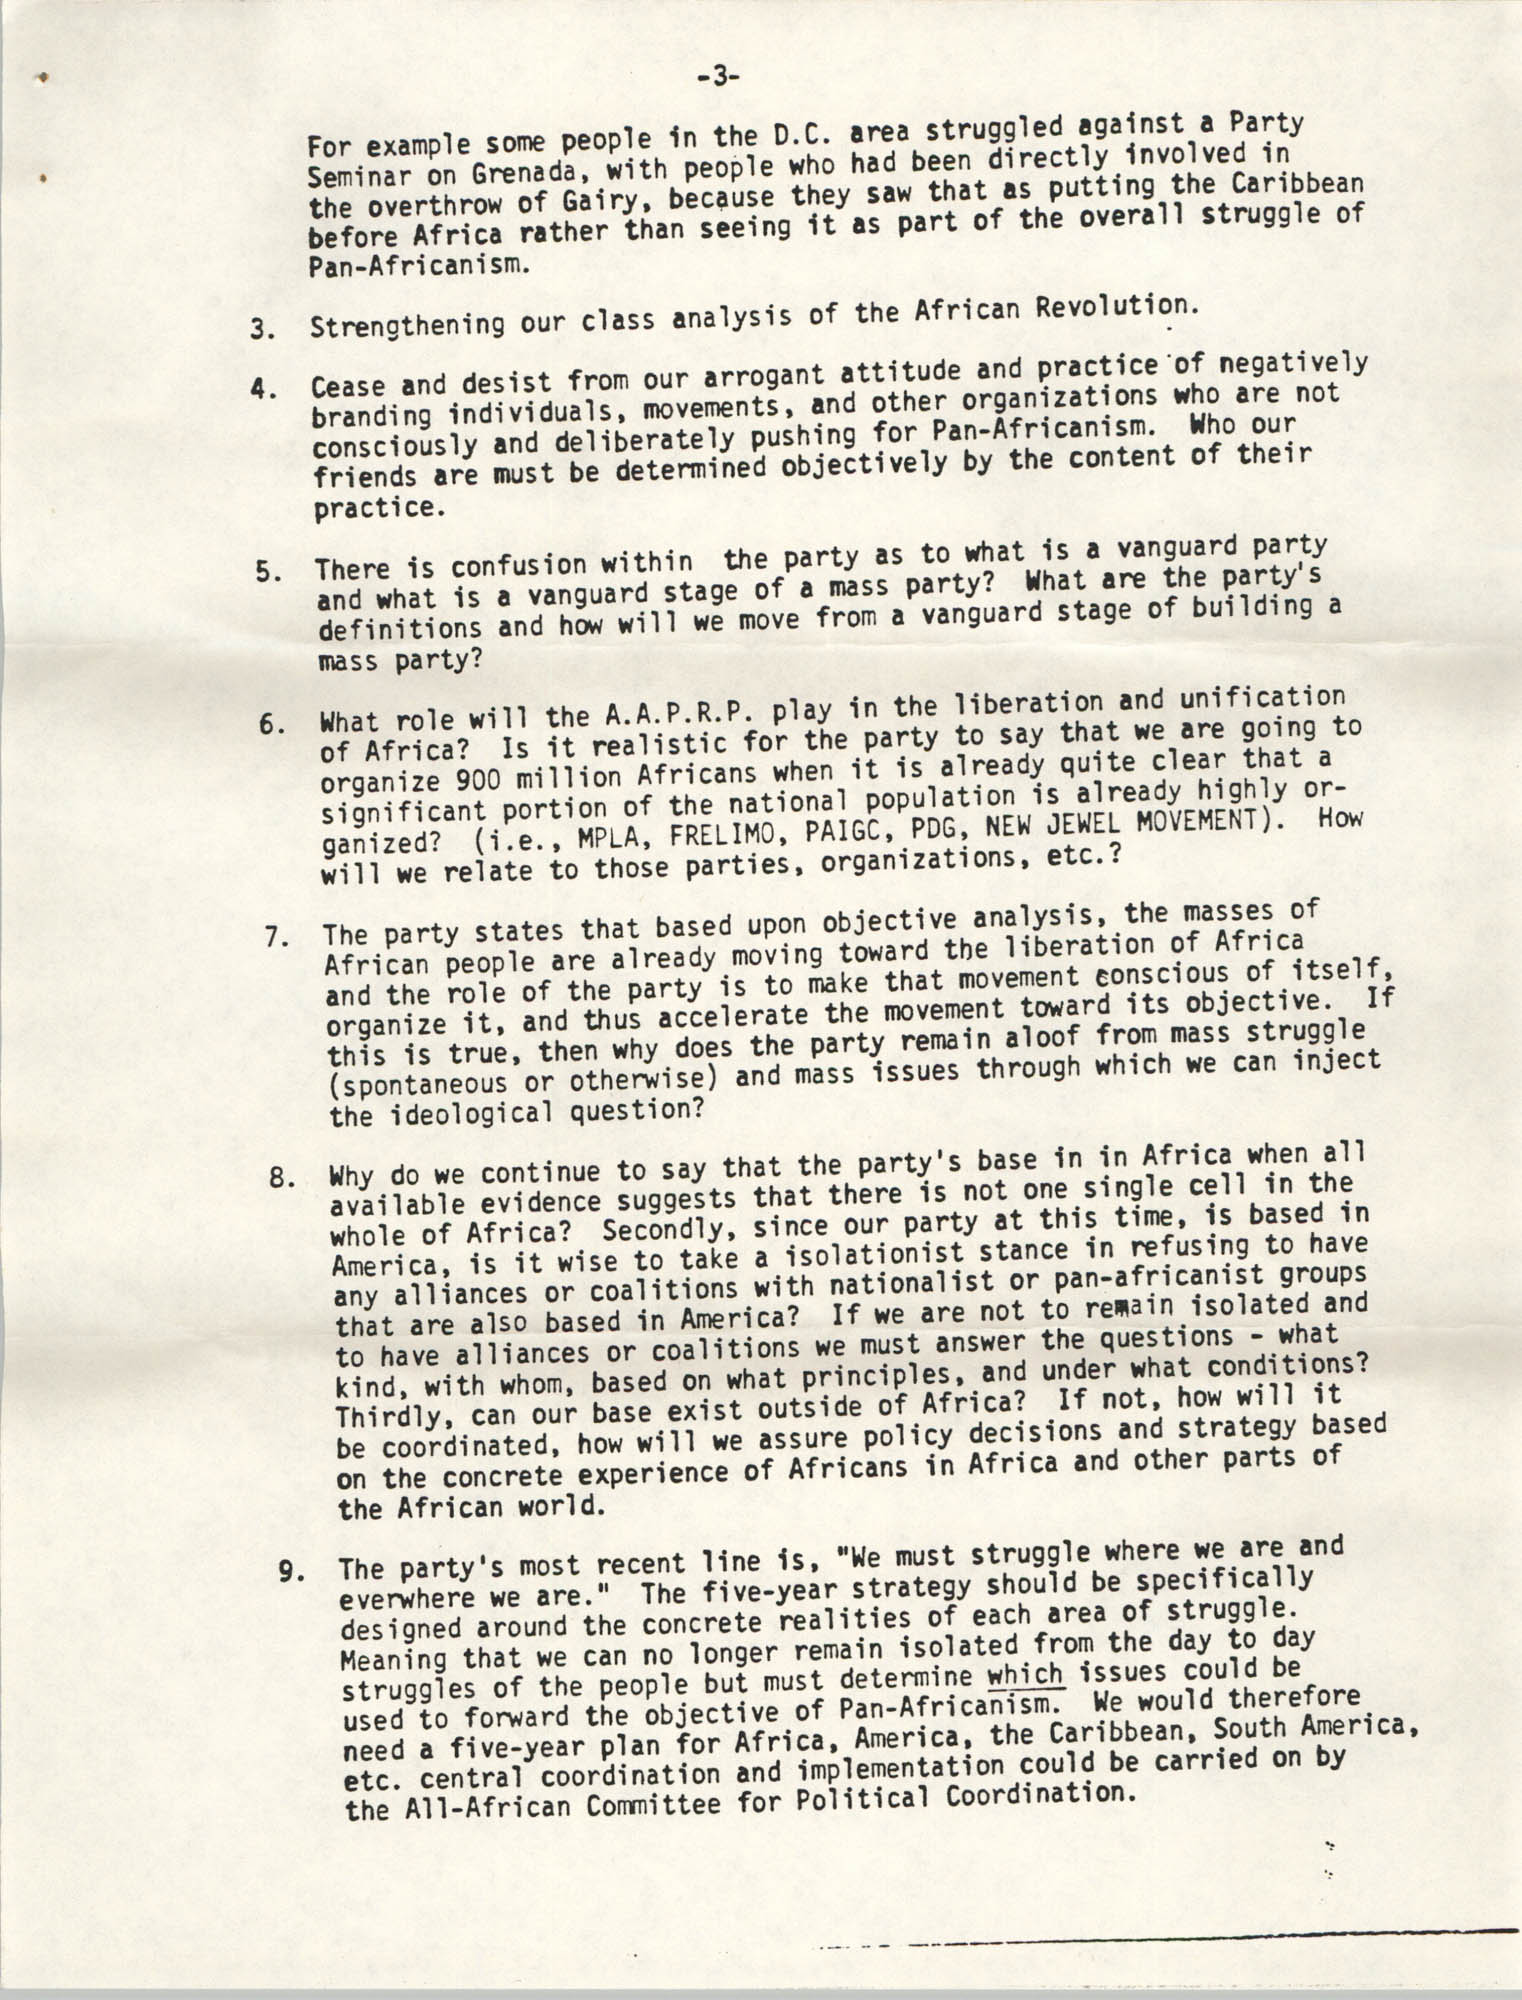 All African People's Revolutionary Party Memorandum, 1978, Page 3